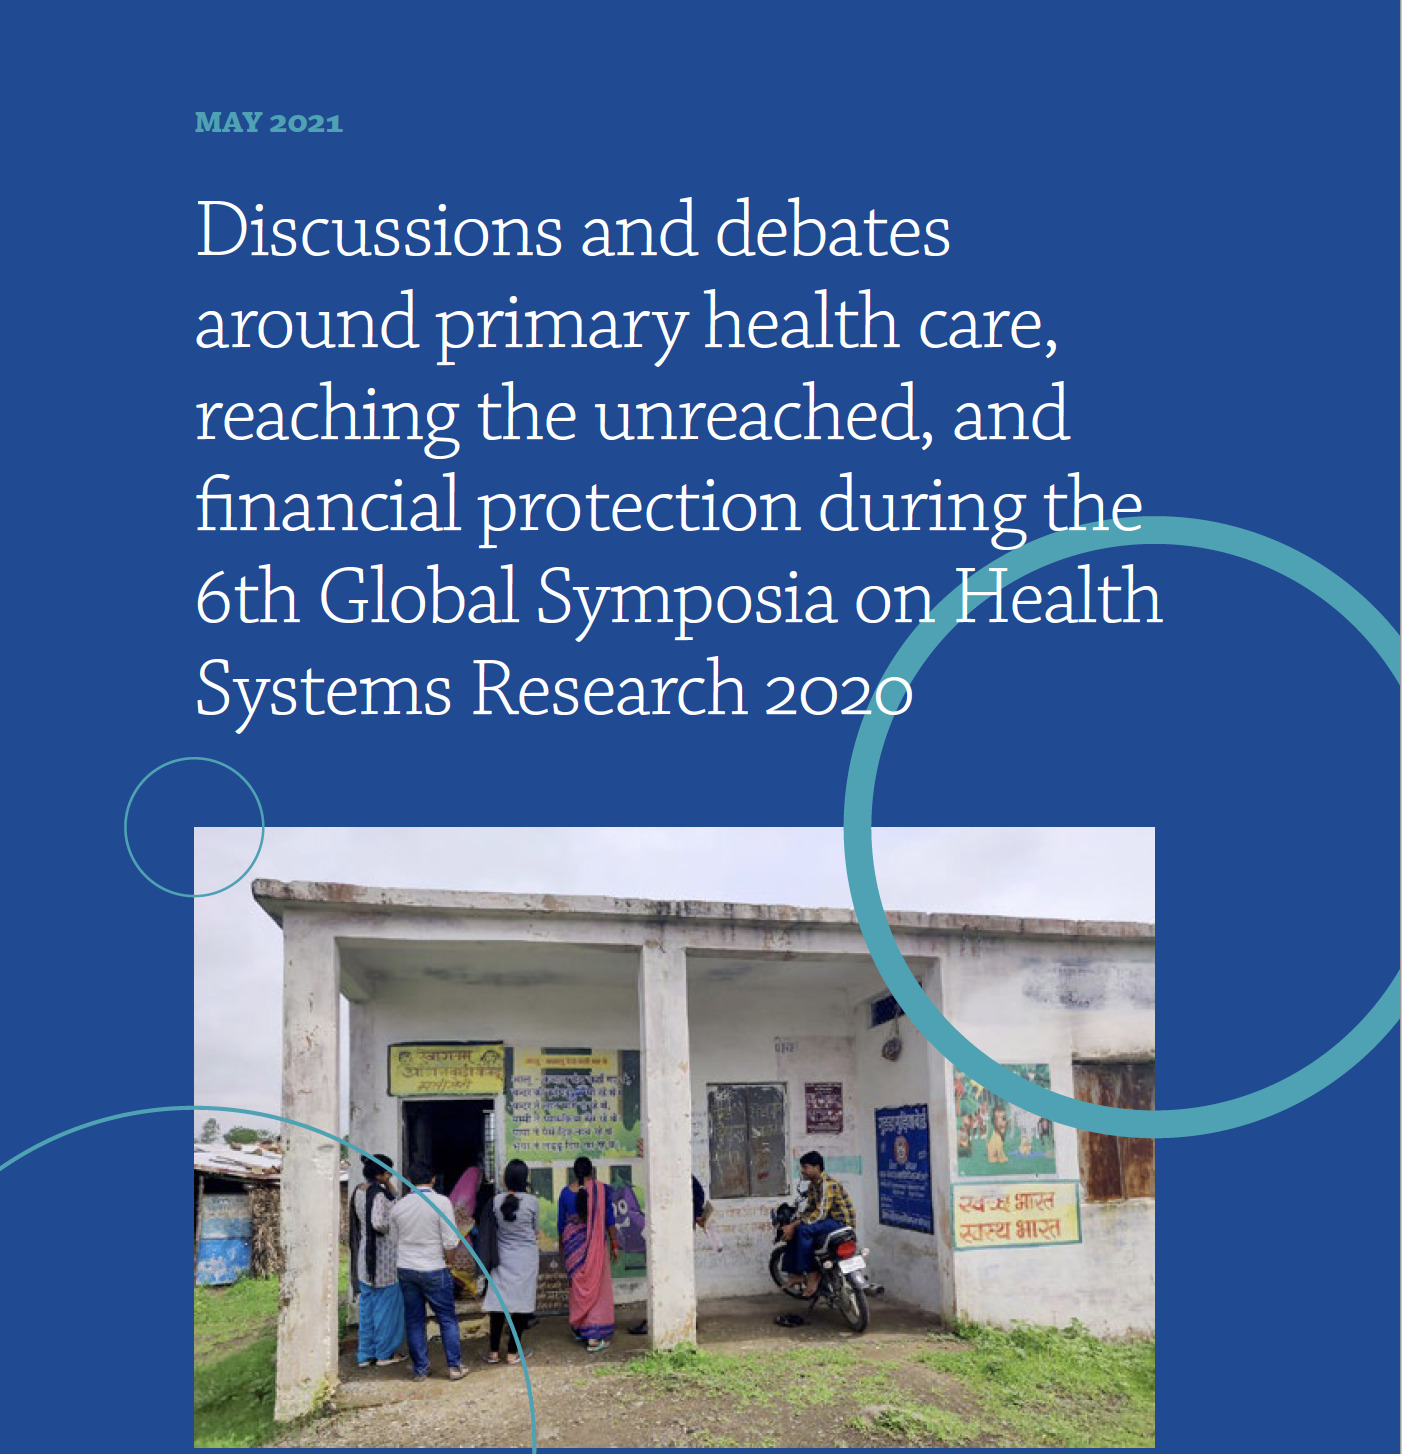 New Report: Discussions and debates around primary health care, reaching the unreached, and financial protection during the 6th Global Symposia on Health Systems Research 2020